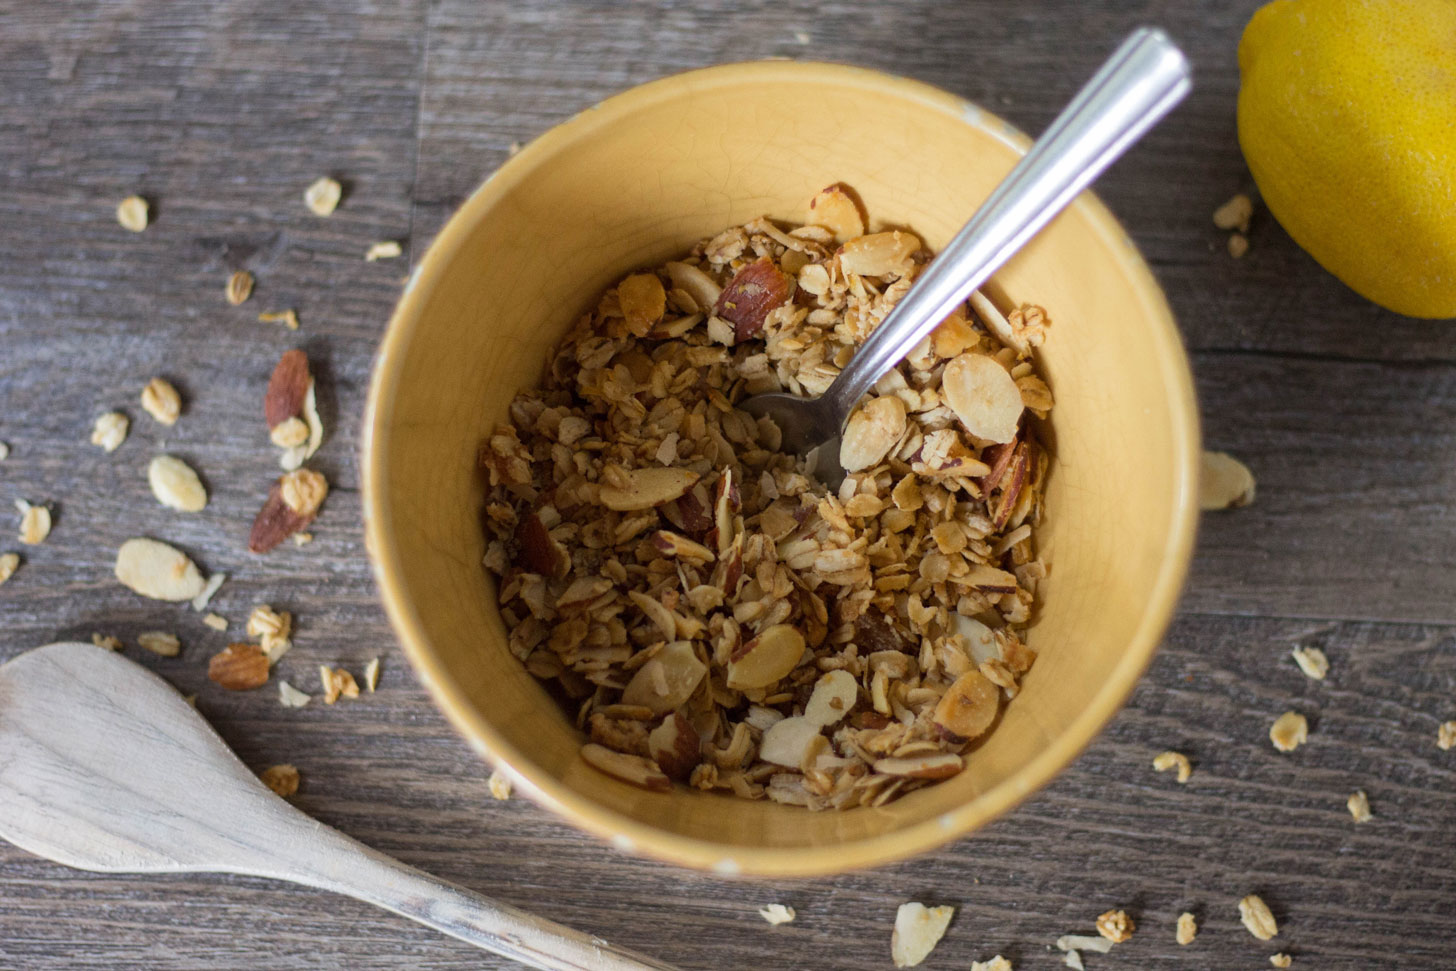 Vegan granola in yellow bowl.